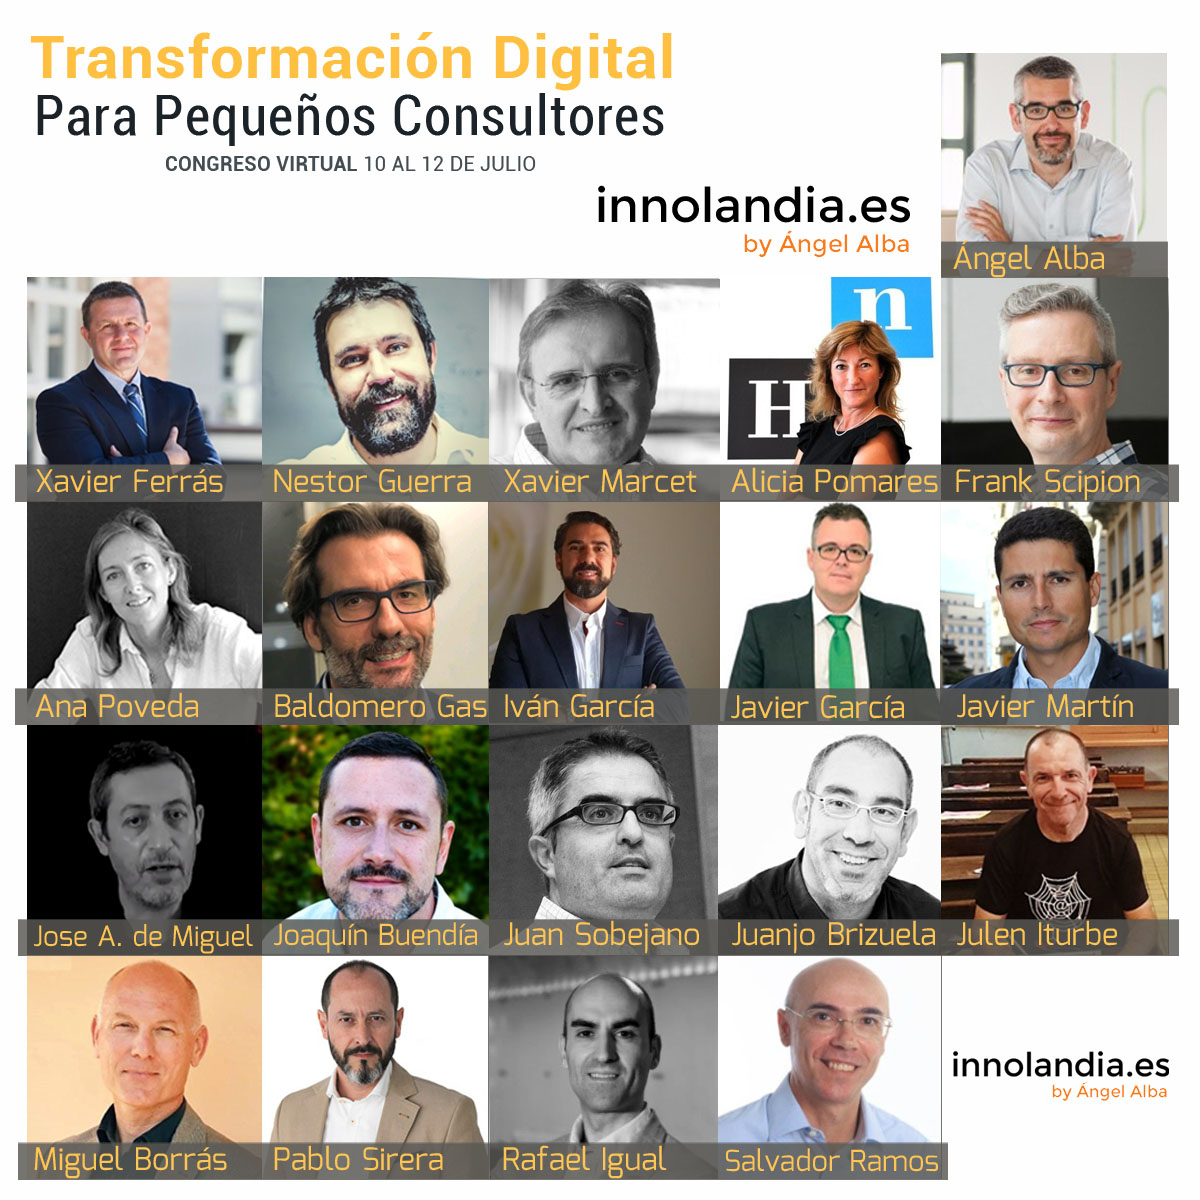 La transformación digital en consultoría: cómo surfear la ola digital